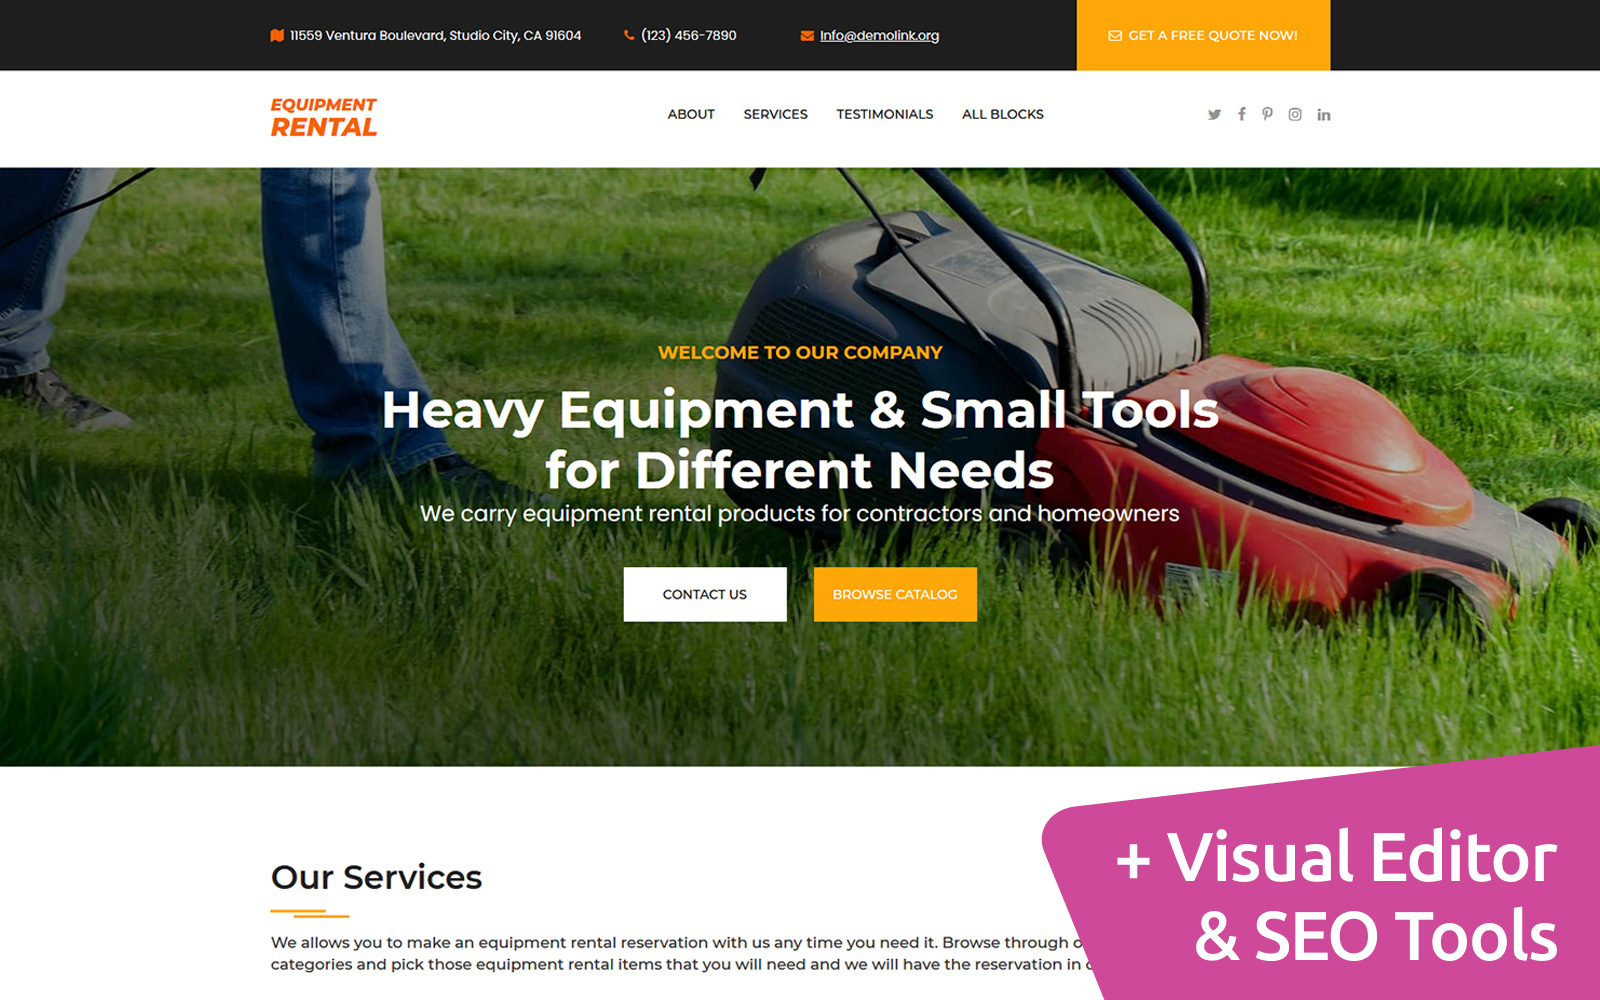 Equipment Rental MotoCMS Landing Page Template